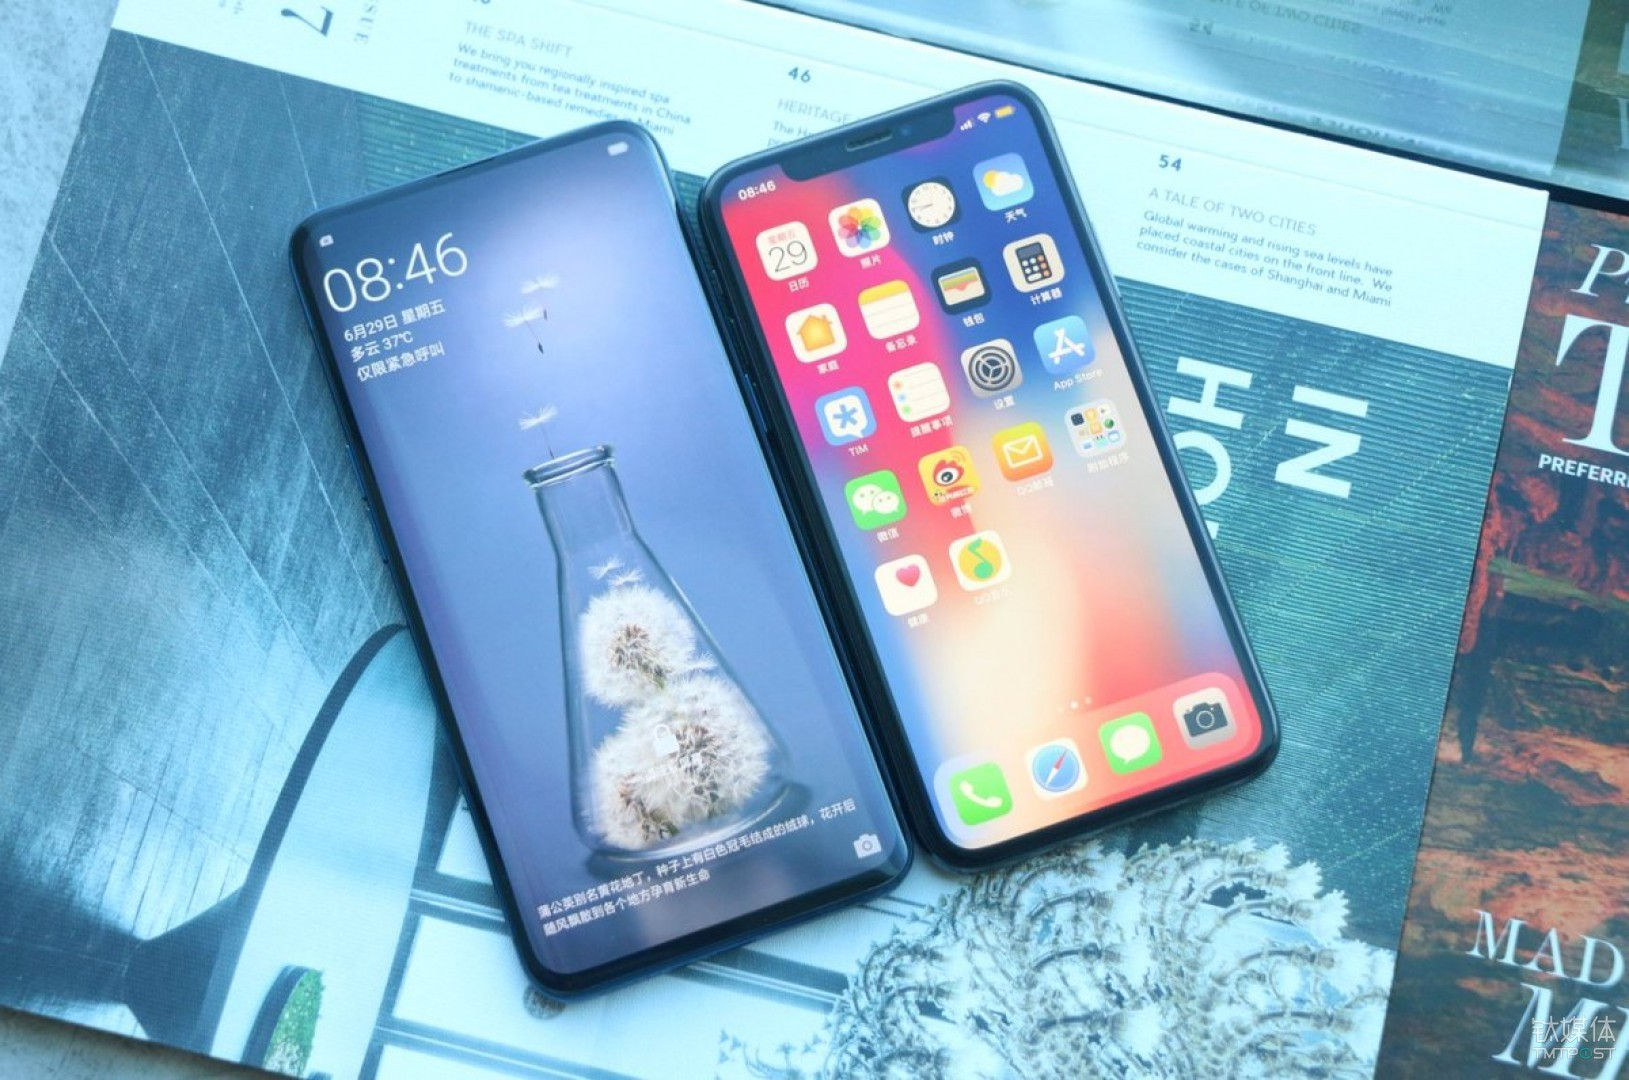 OPPO Find X 与 iPhone X